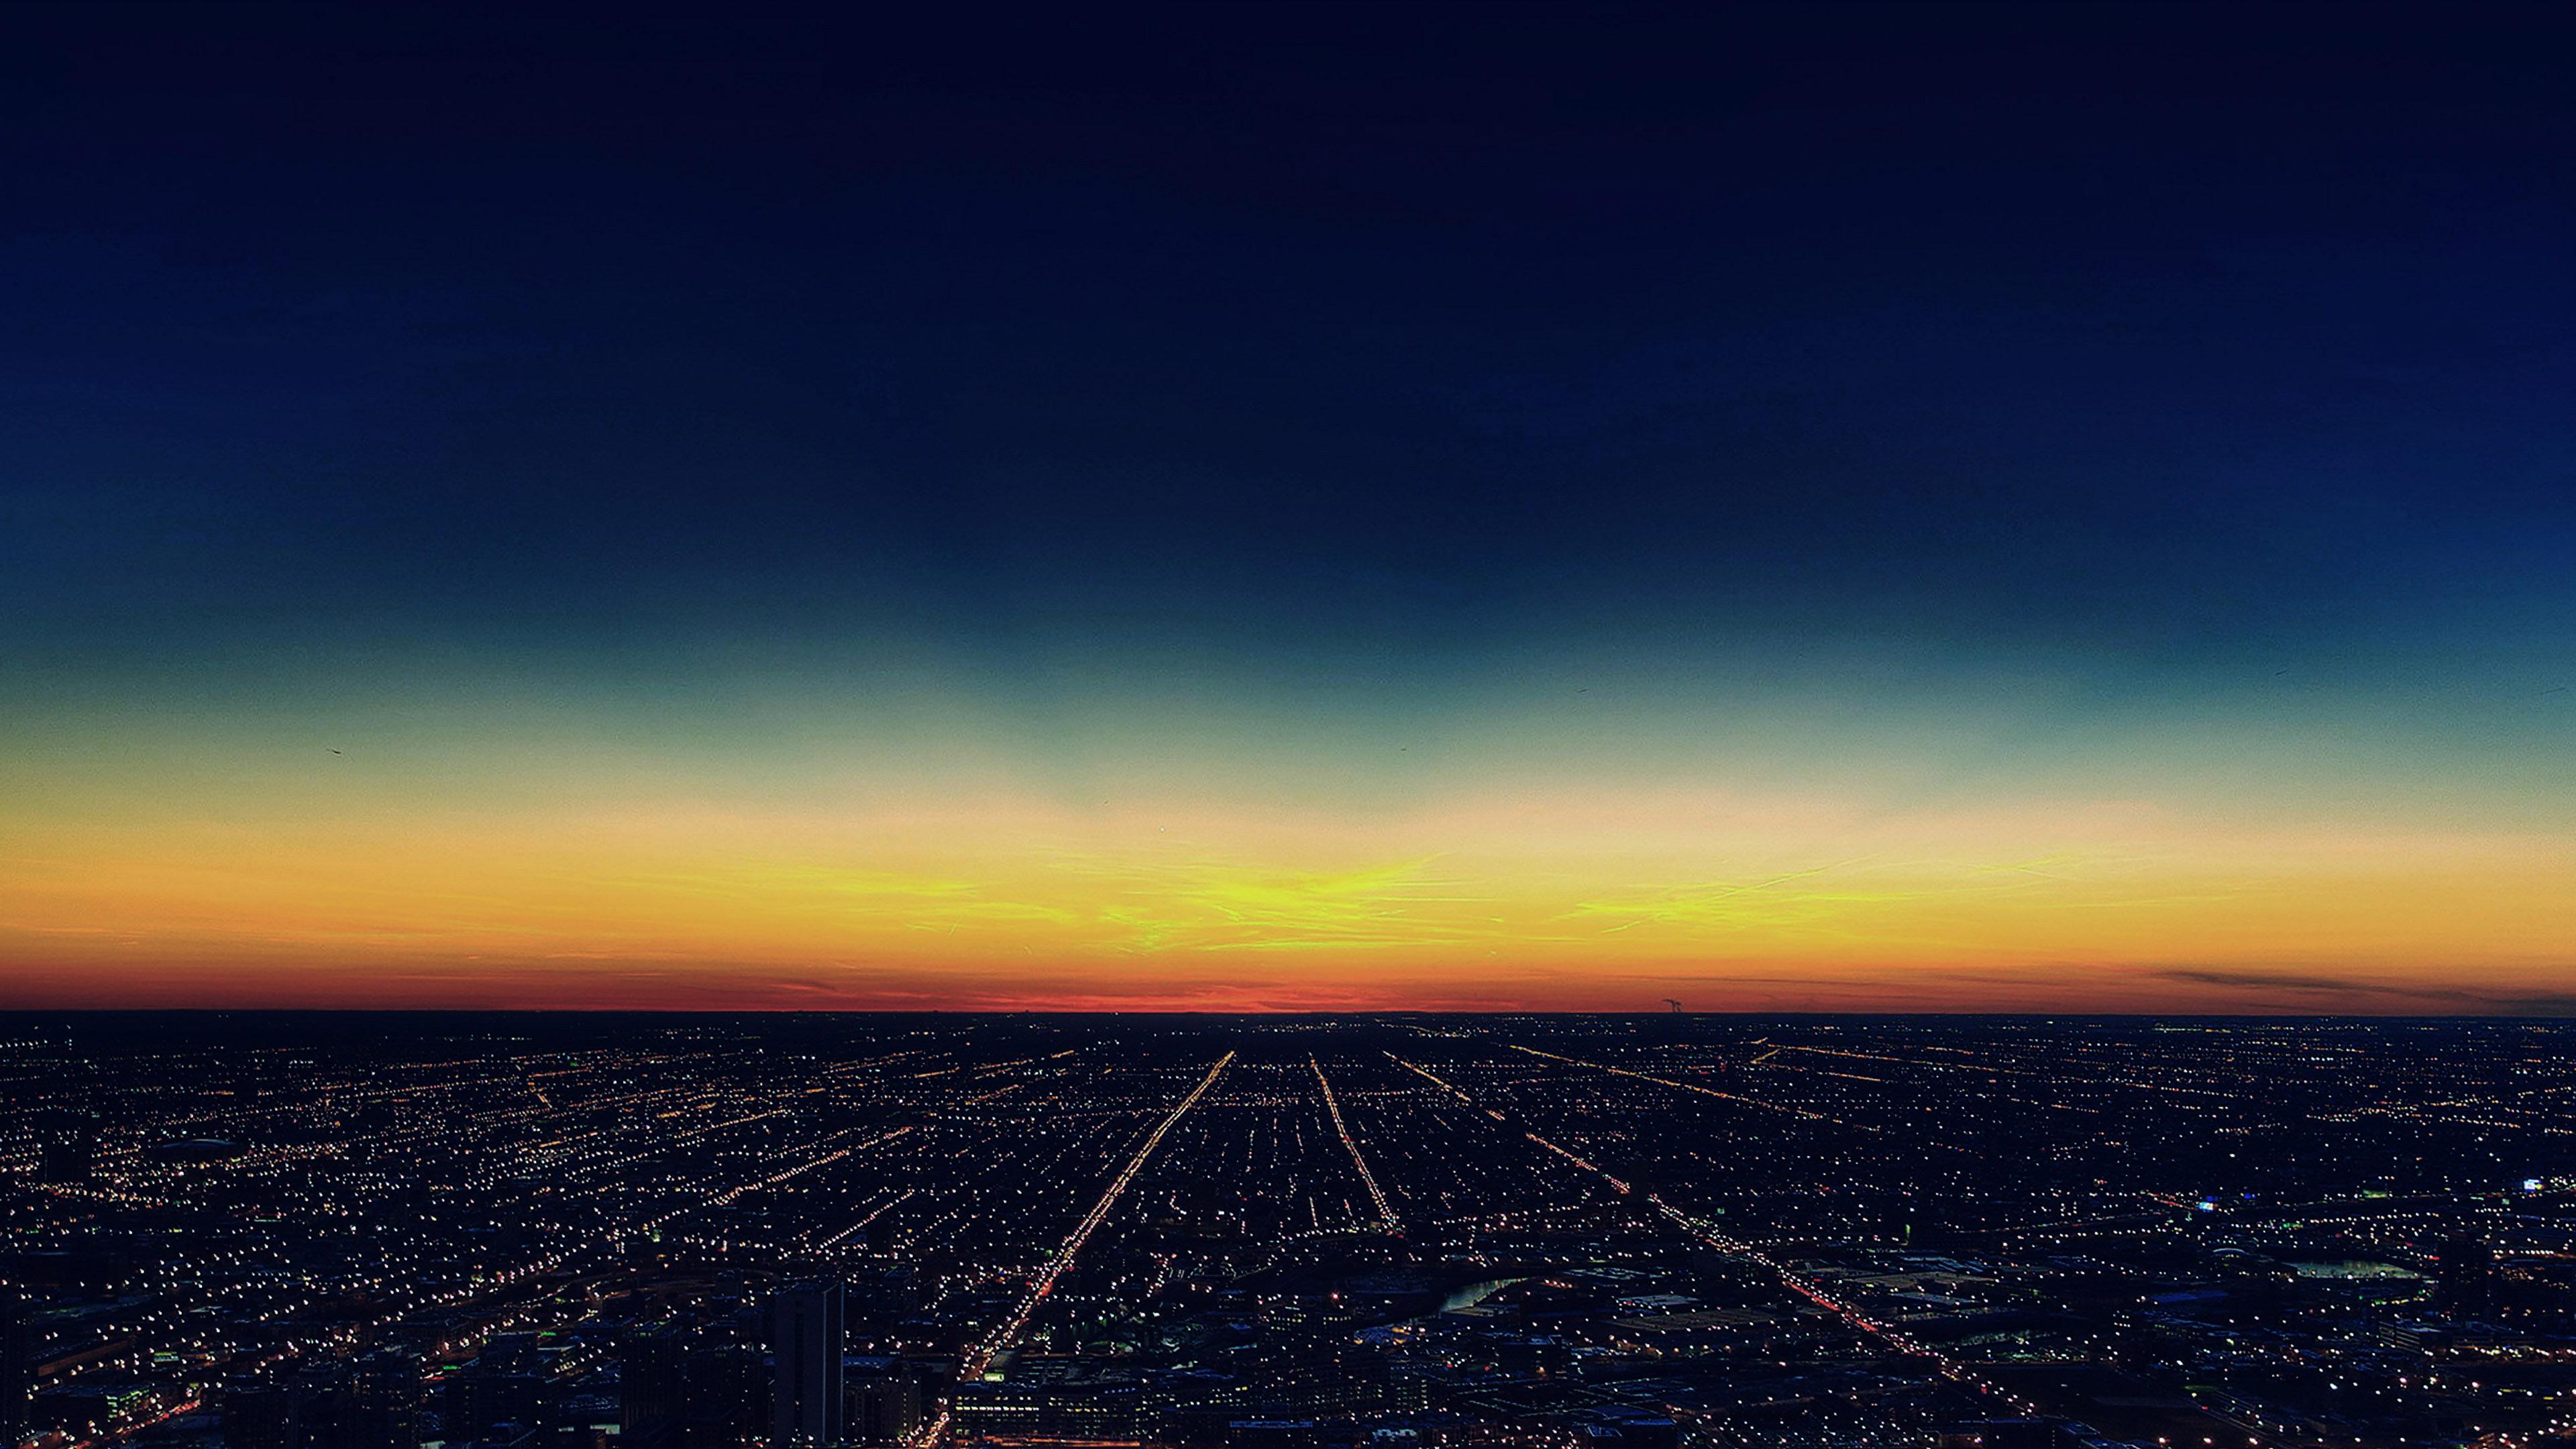 Wallpaper Sunrise At Fall Mg31 Night Sky Flying Blue Sunset City Wallpaper